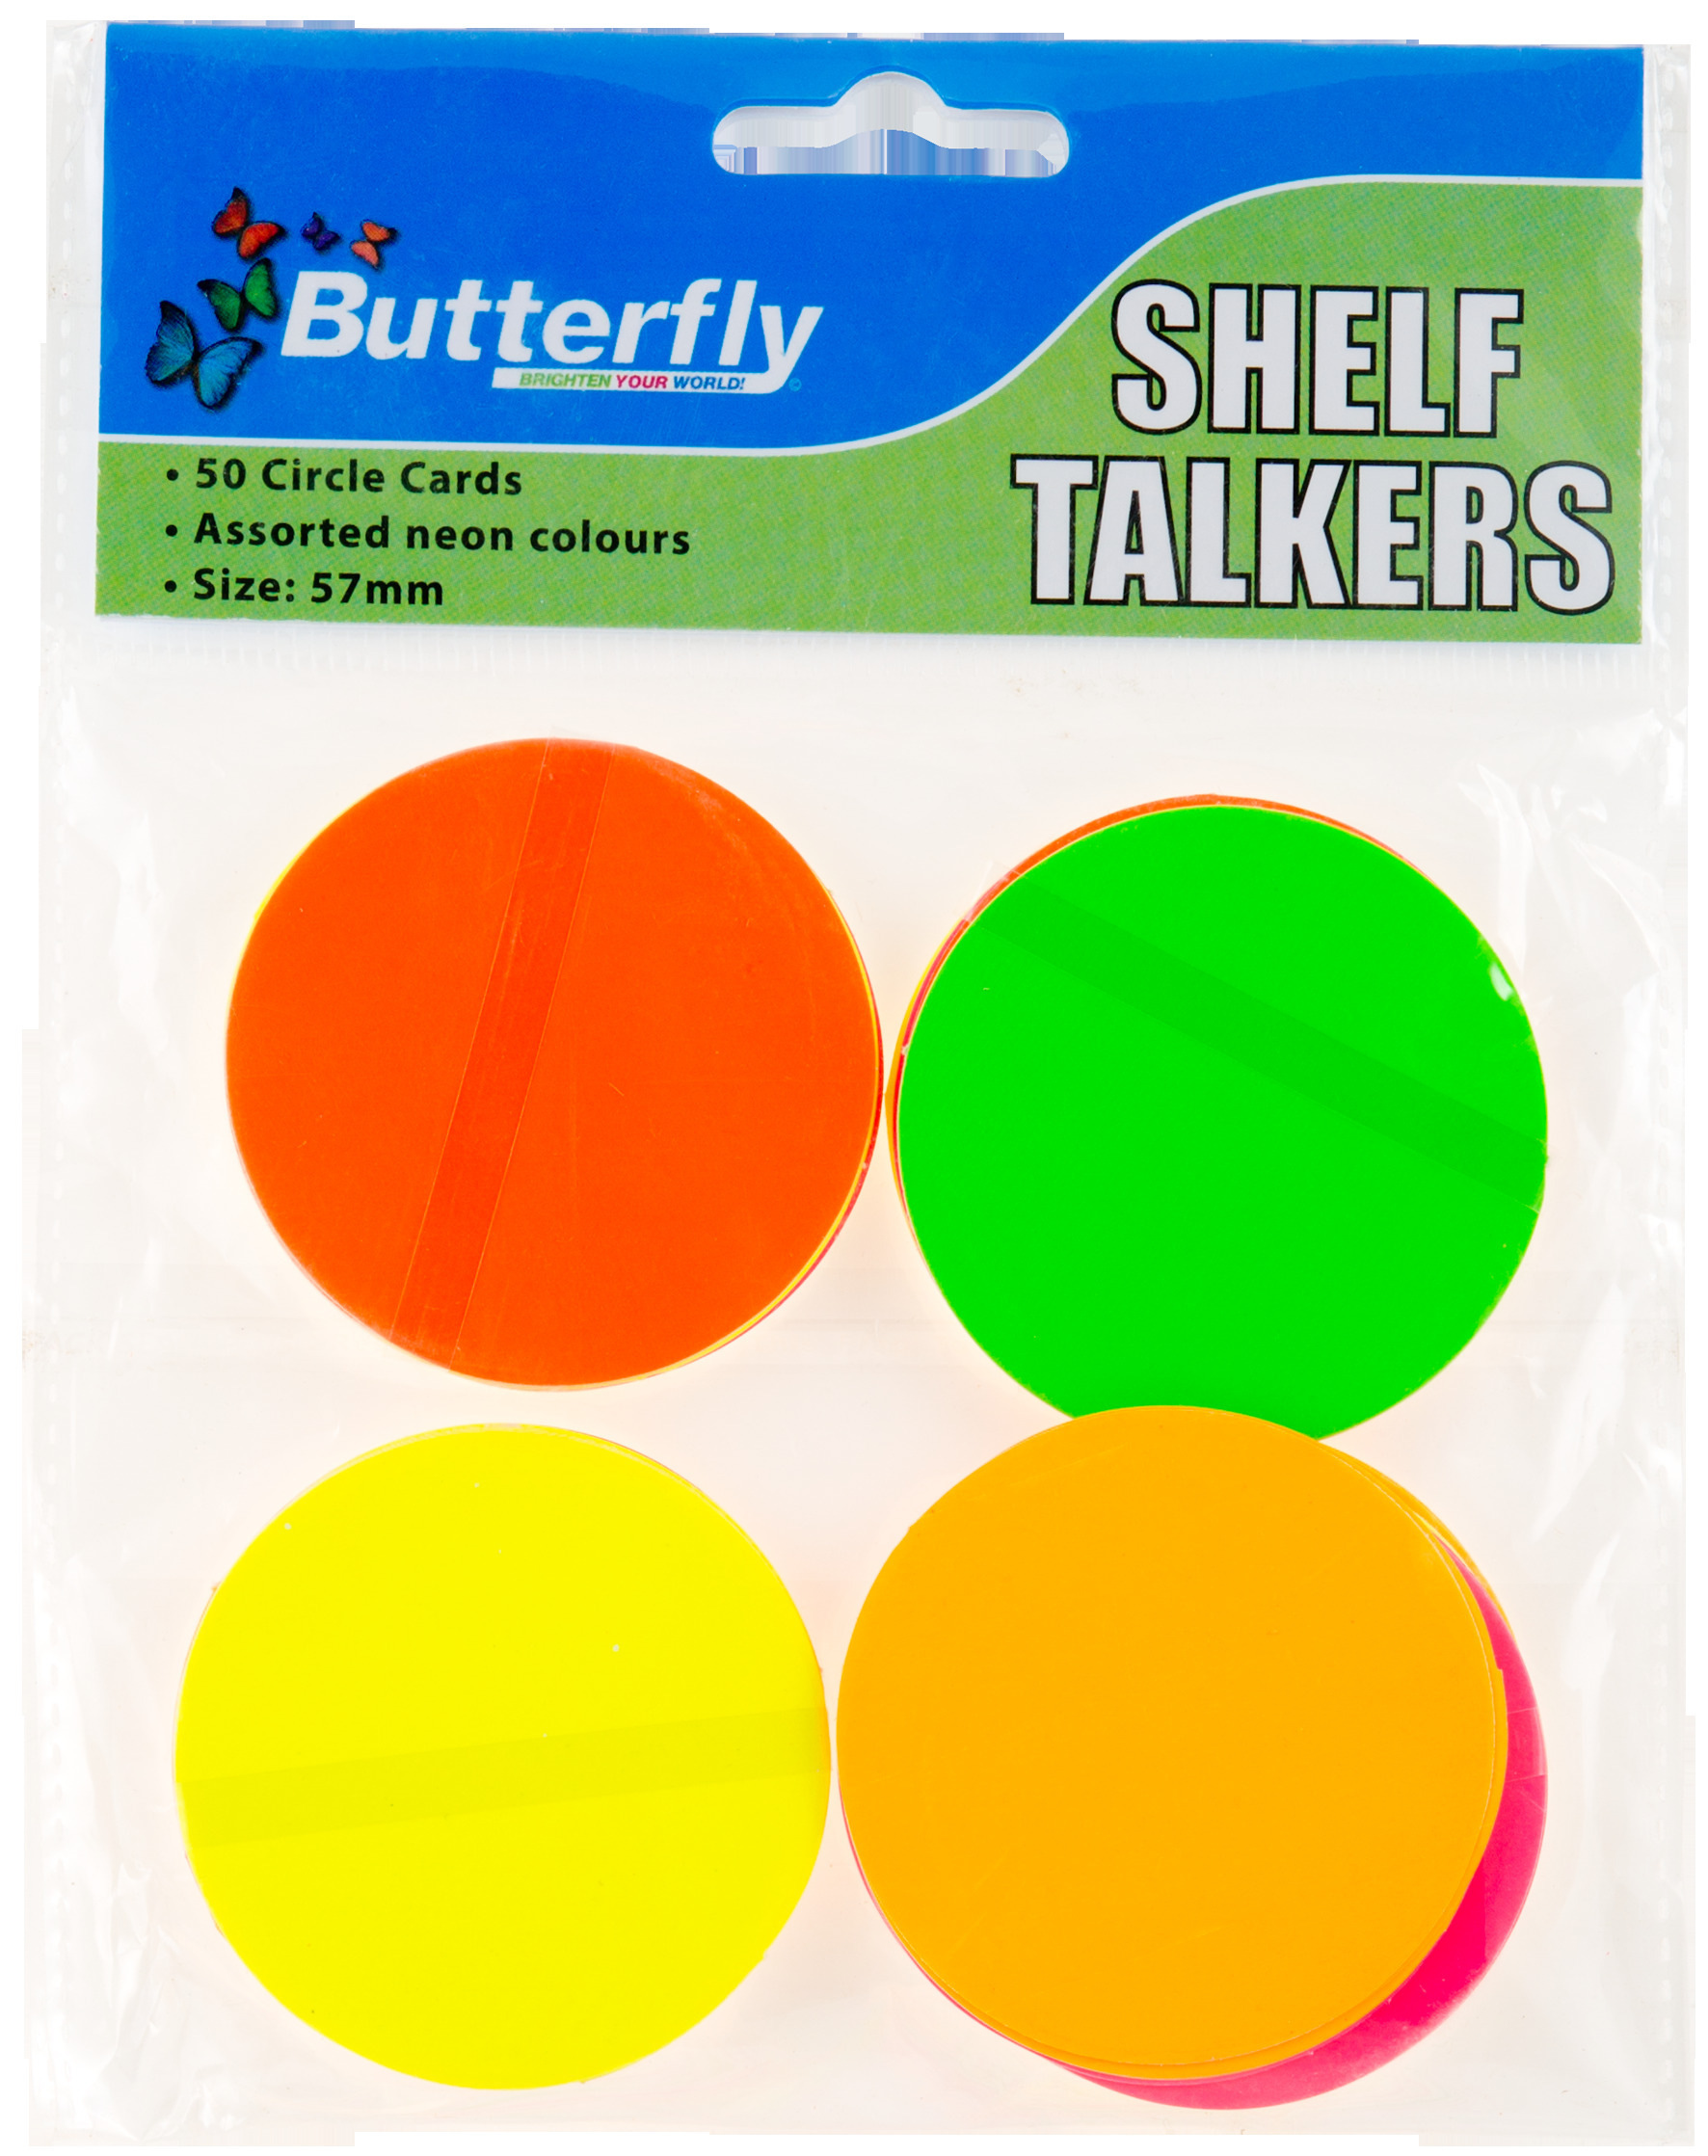 Shelf Talkers - Card Circles 50 (57mm)